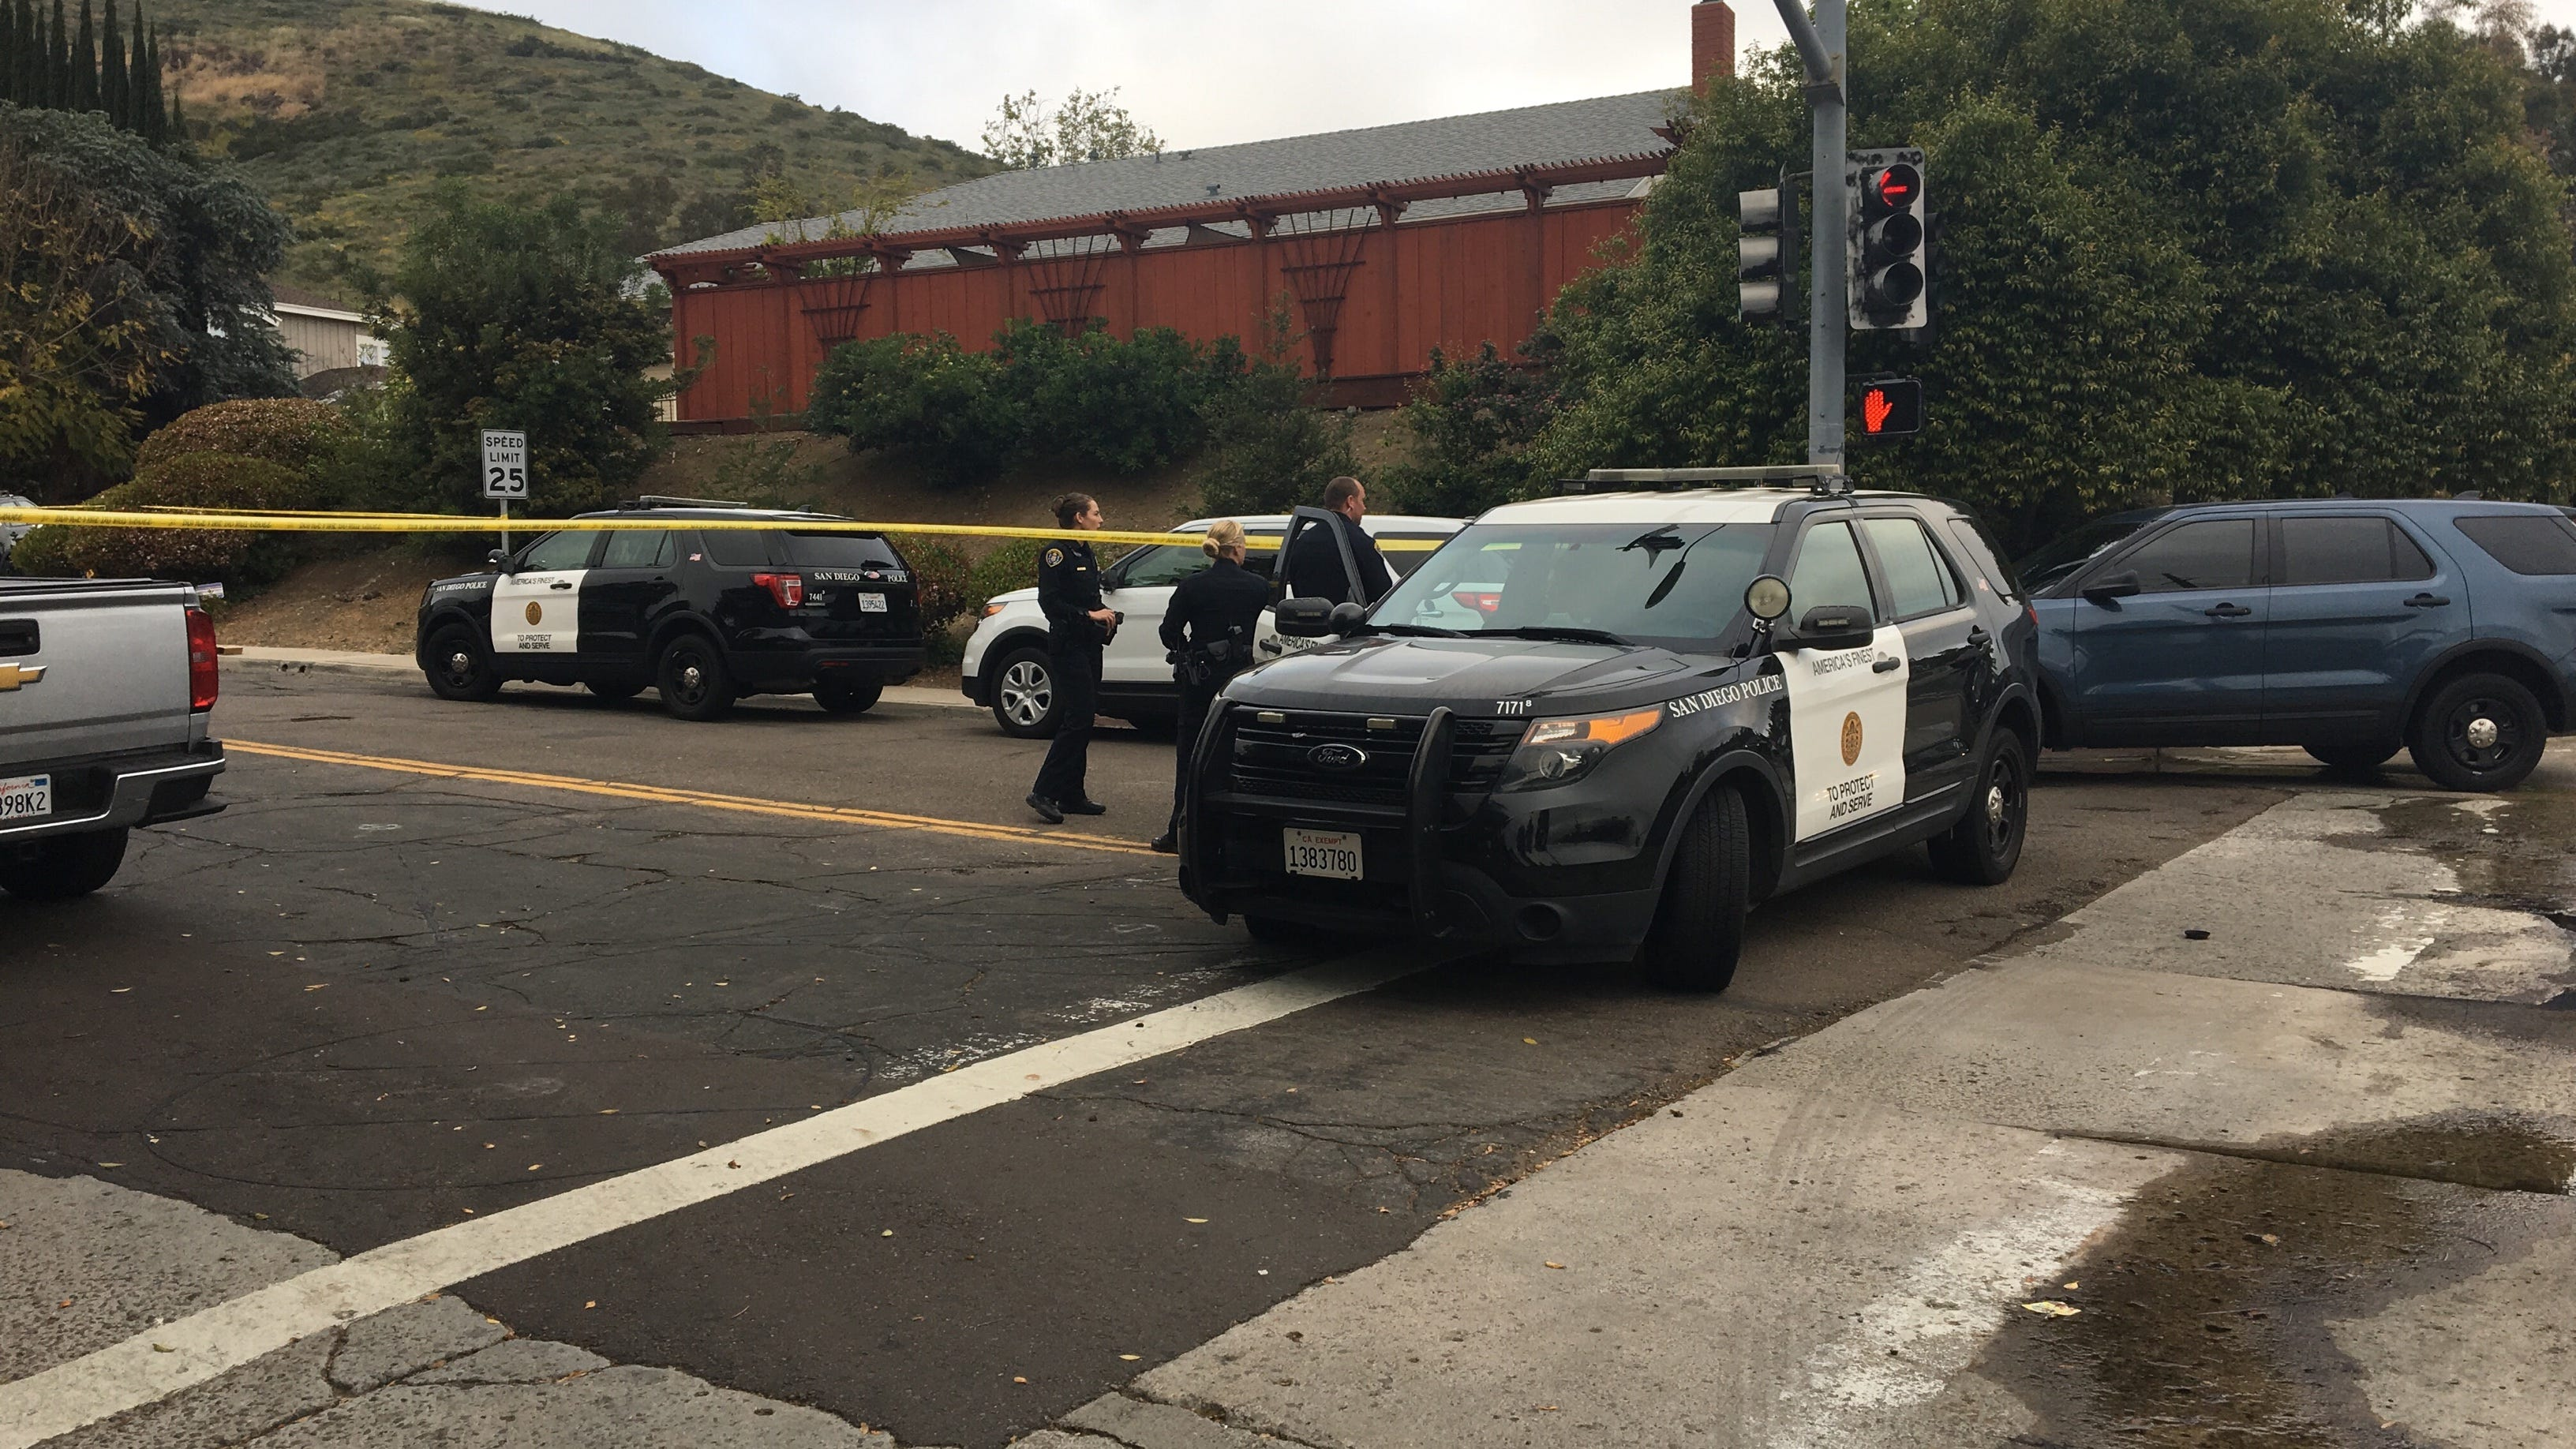 San Diego synagogue shooting: What we know about suspect John Earnest